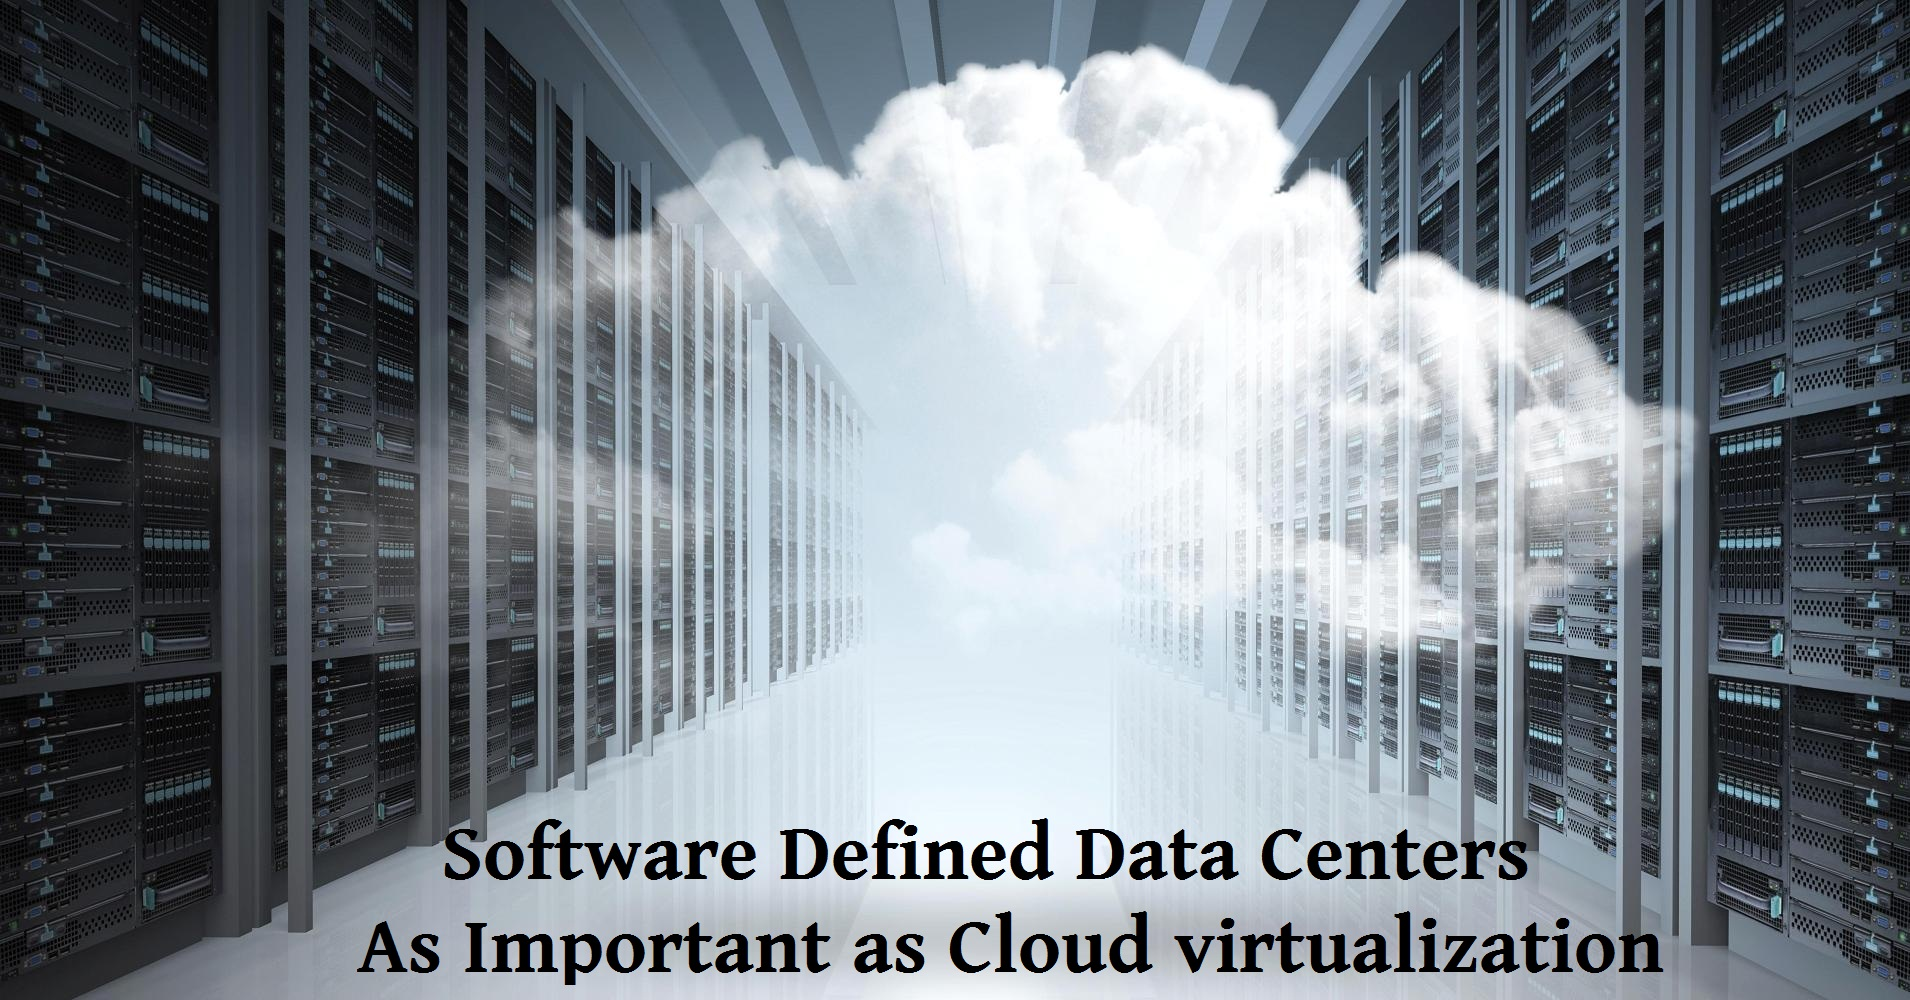 Software Defined Data Centers: As Important as Cloud Virtualization